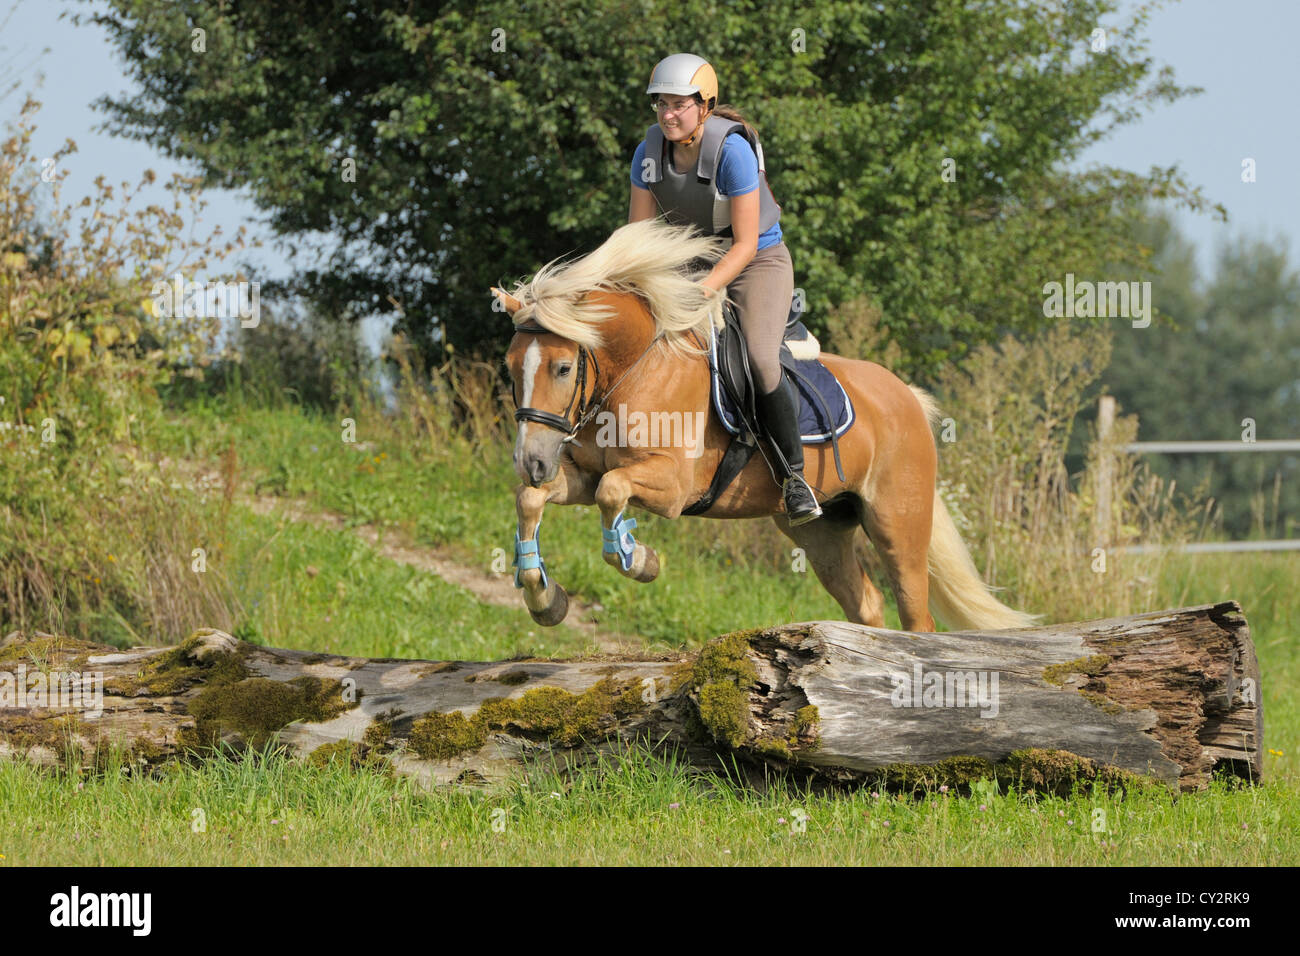 Entry level cross country training (Haflinger horse) - Stock Image